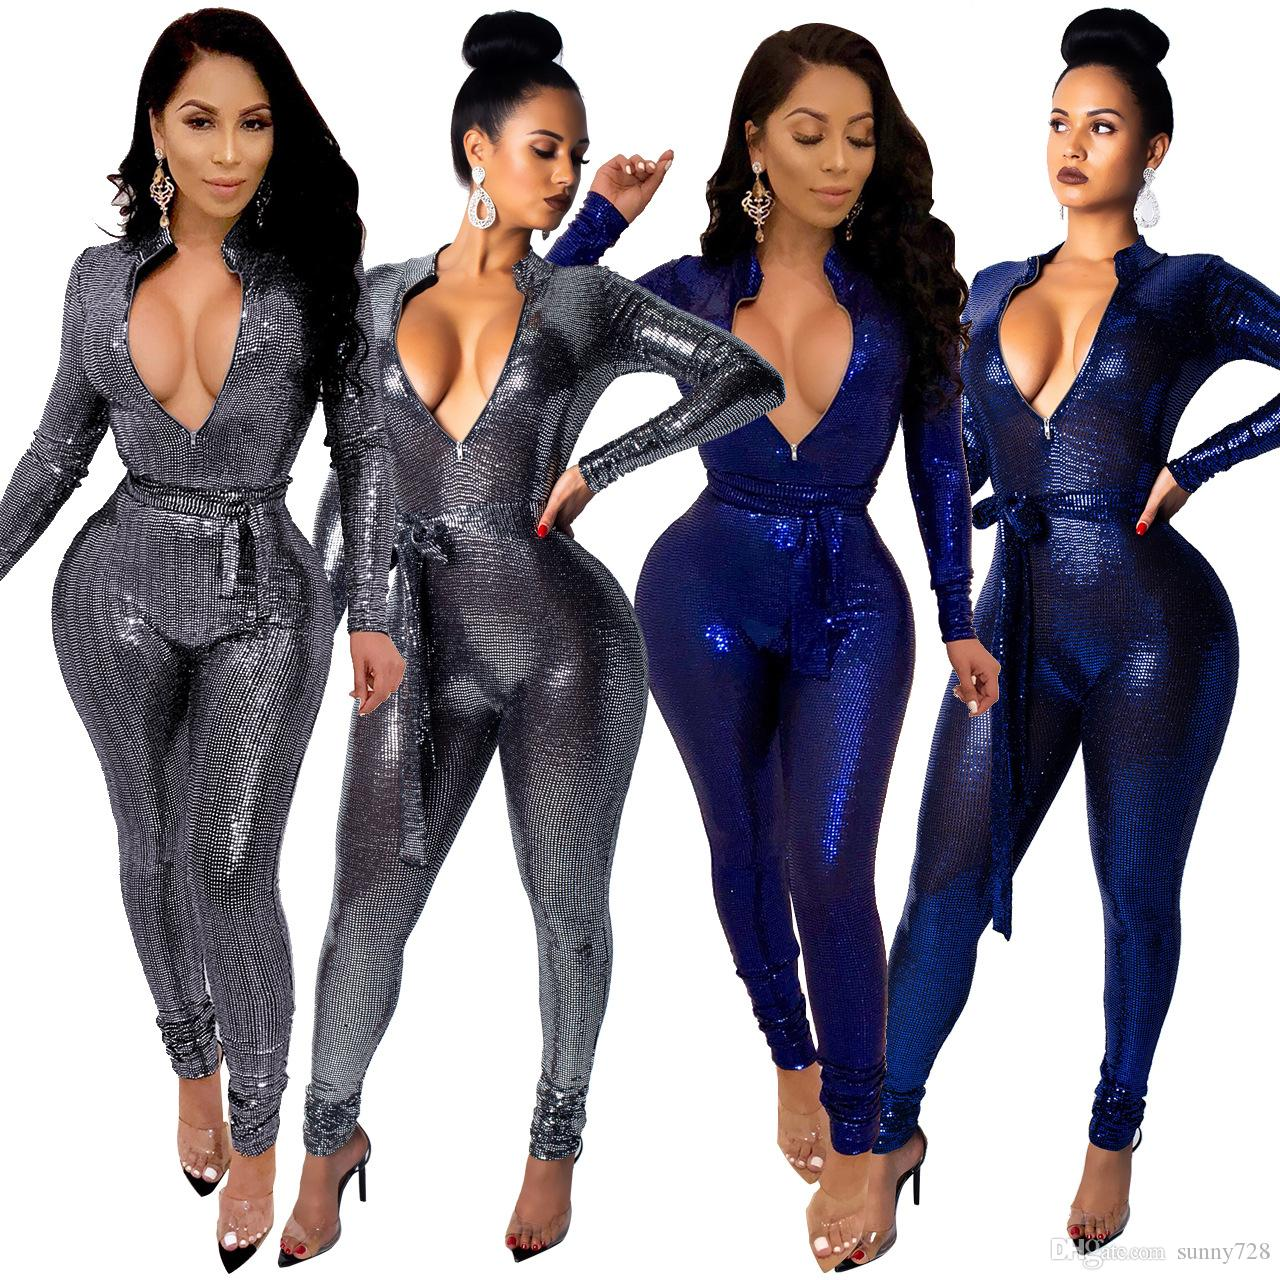 b5423c297dc 2019 Hot Latest Blingbling Sequins Women Party Jumpsuits Rompers Sexy Deep  V Neck Long Sleeves Sash Skinny Club Pants Outfits Blue Silver Sexy Women  ...